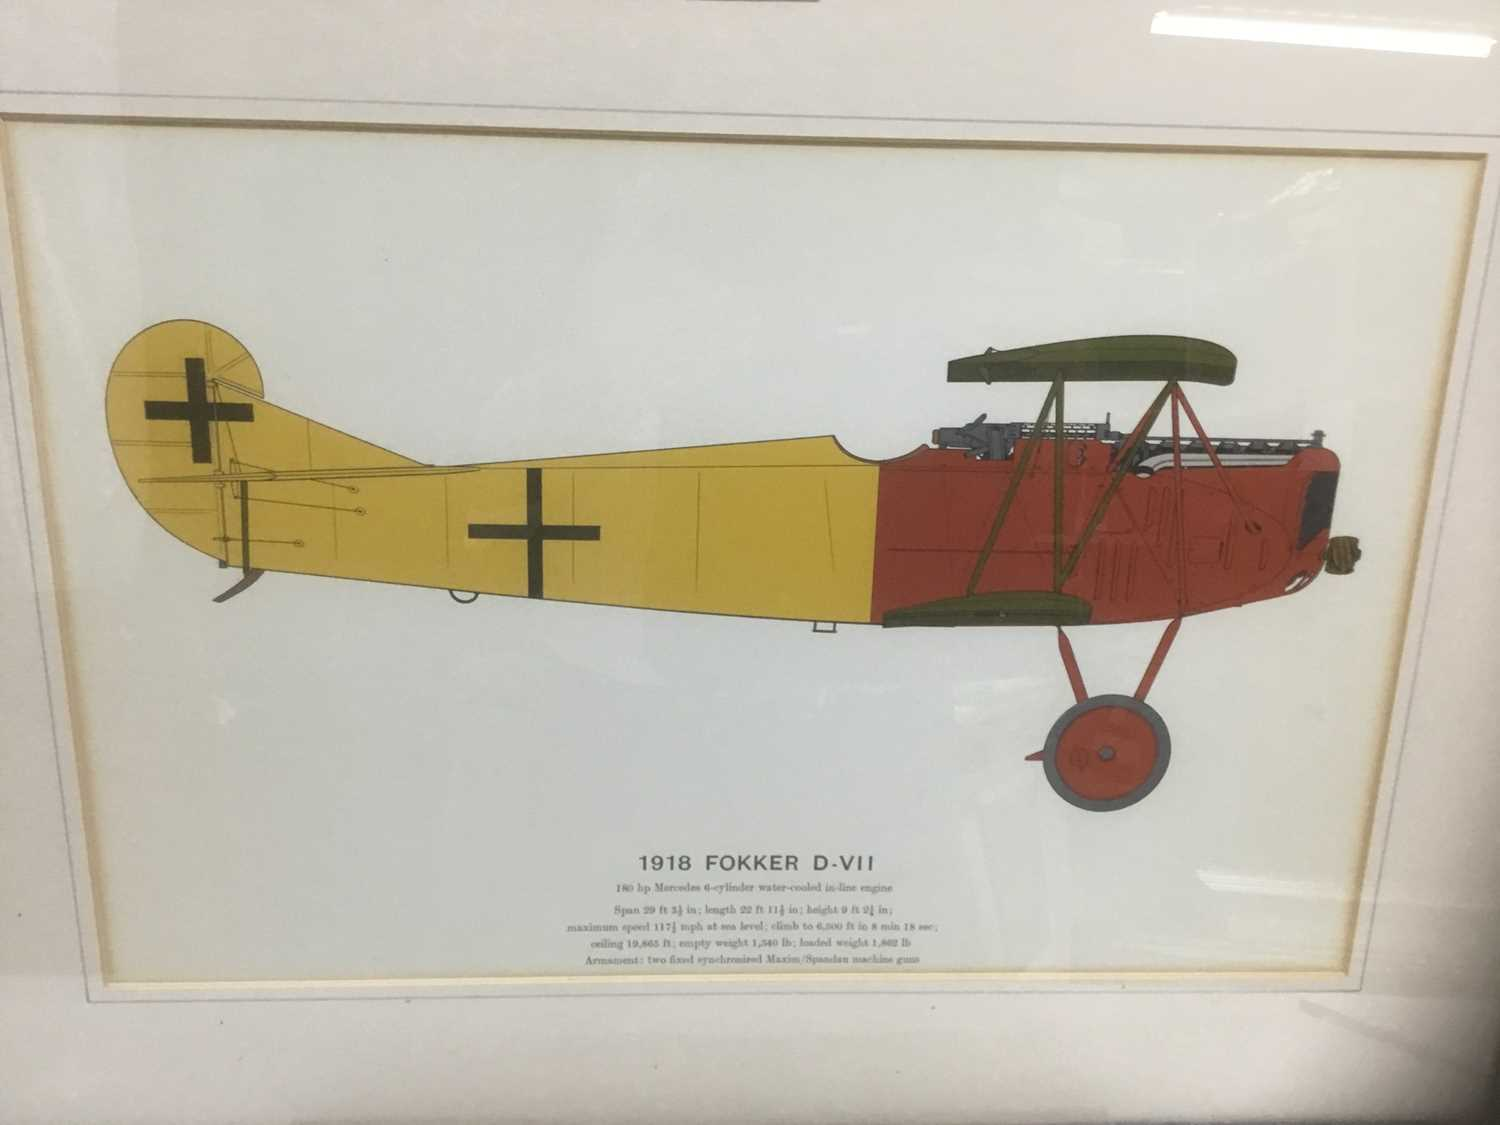 Lot 79 - Set of four coloured prints depicting early 20th century aeroplanes - 1909 Antoinette, 1917 Albatros, 1907/1909 Wright Flyer and 1918 Fokker, 28cm x 43cm, in glazed frames